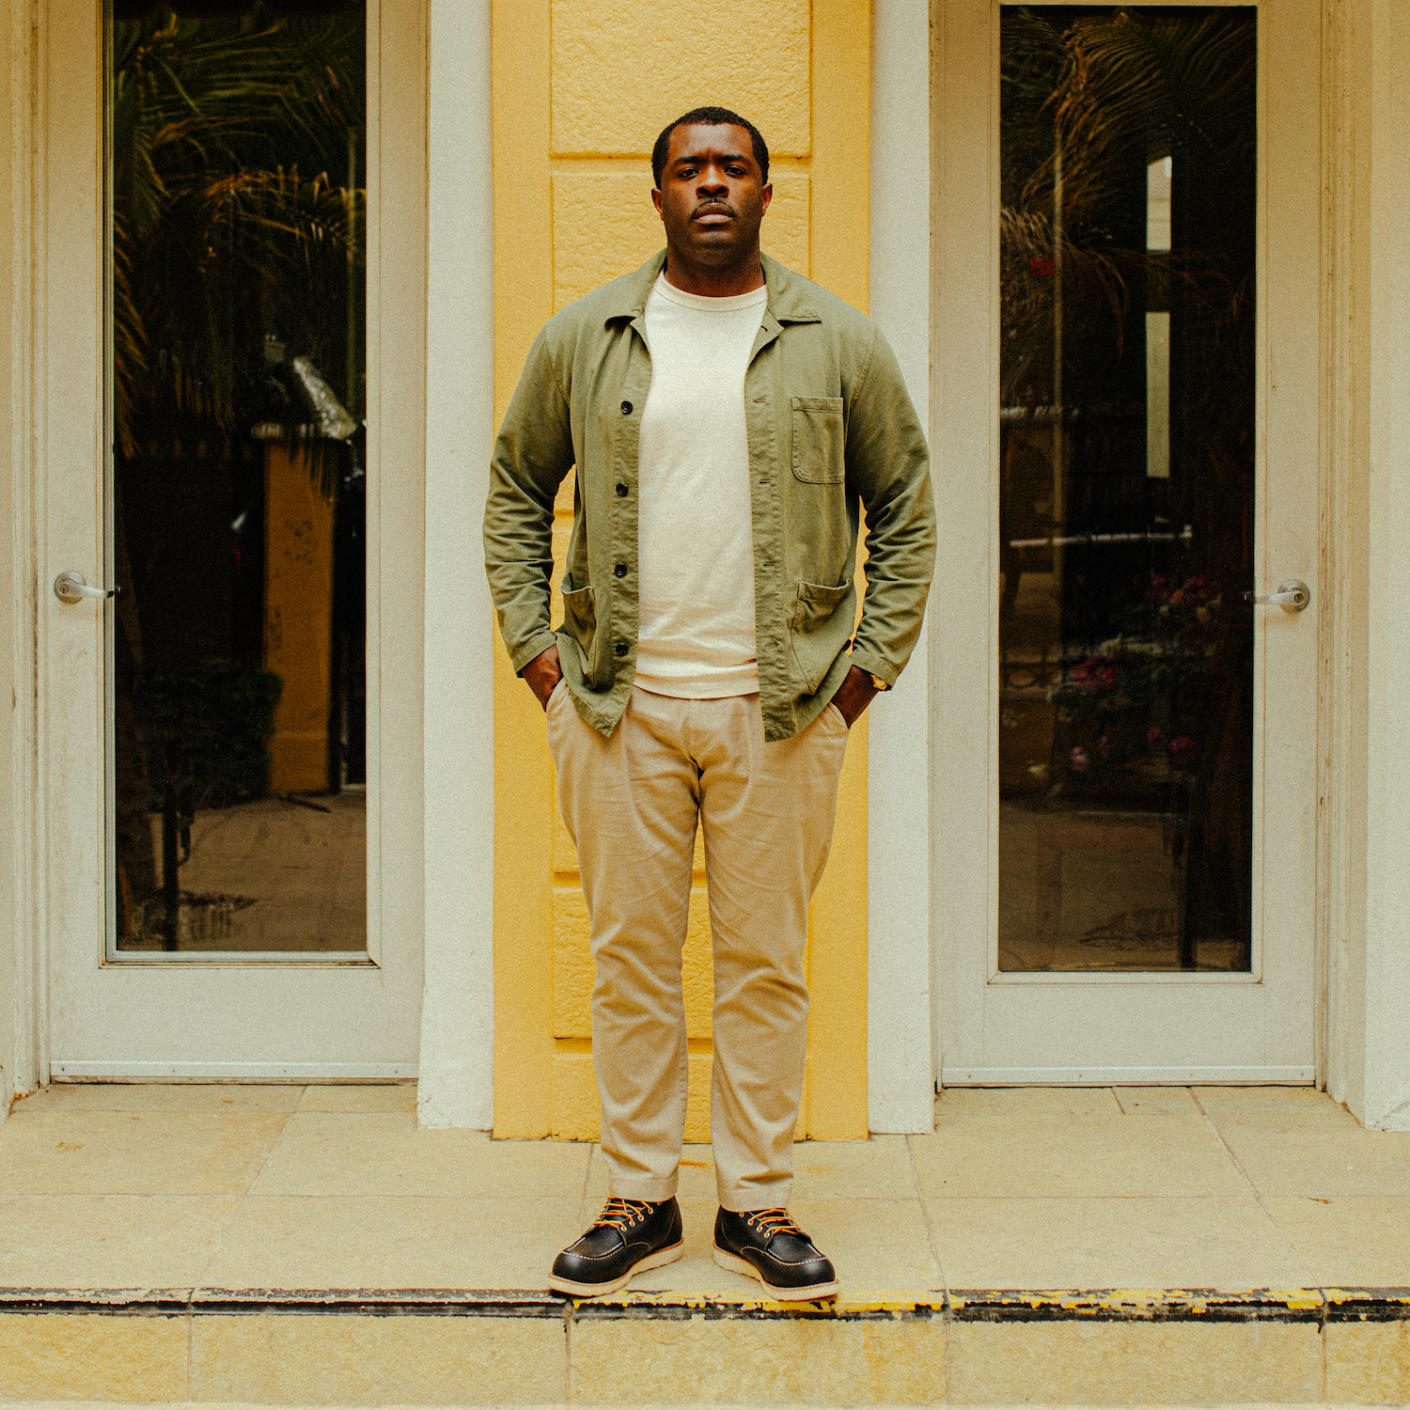 Damon Lawrence, founder and CEO of Stay Homage, an award-winning boutique hotel brand that pays homage to Black culture.